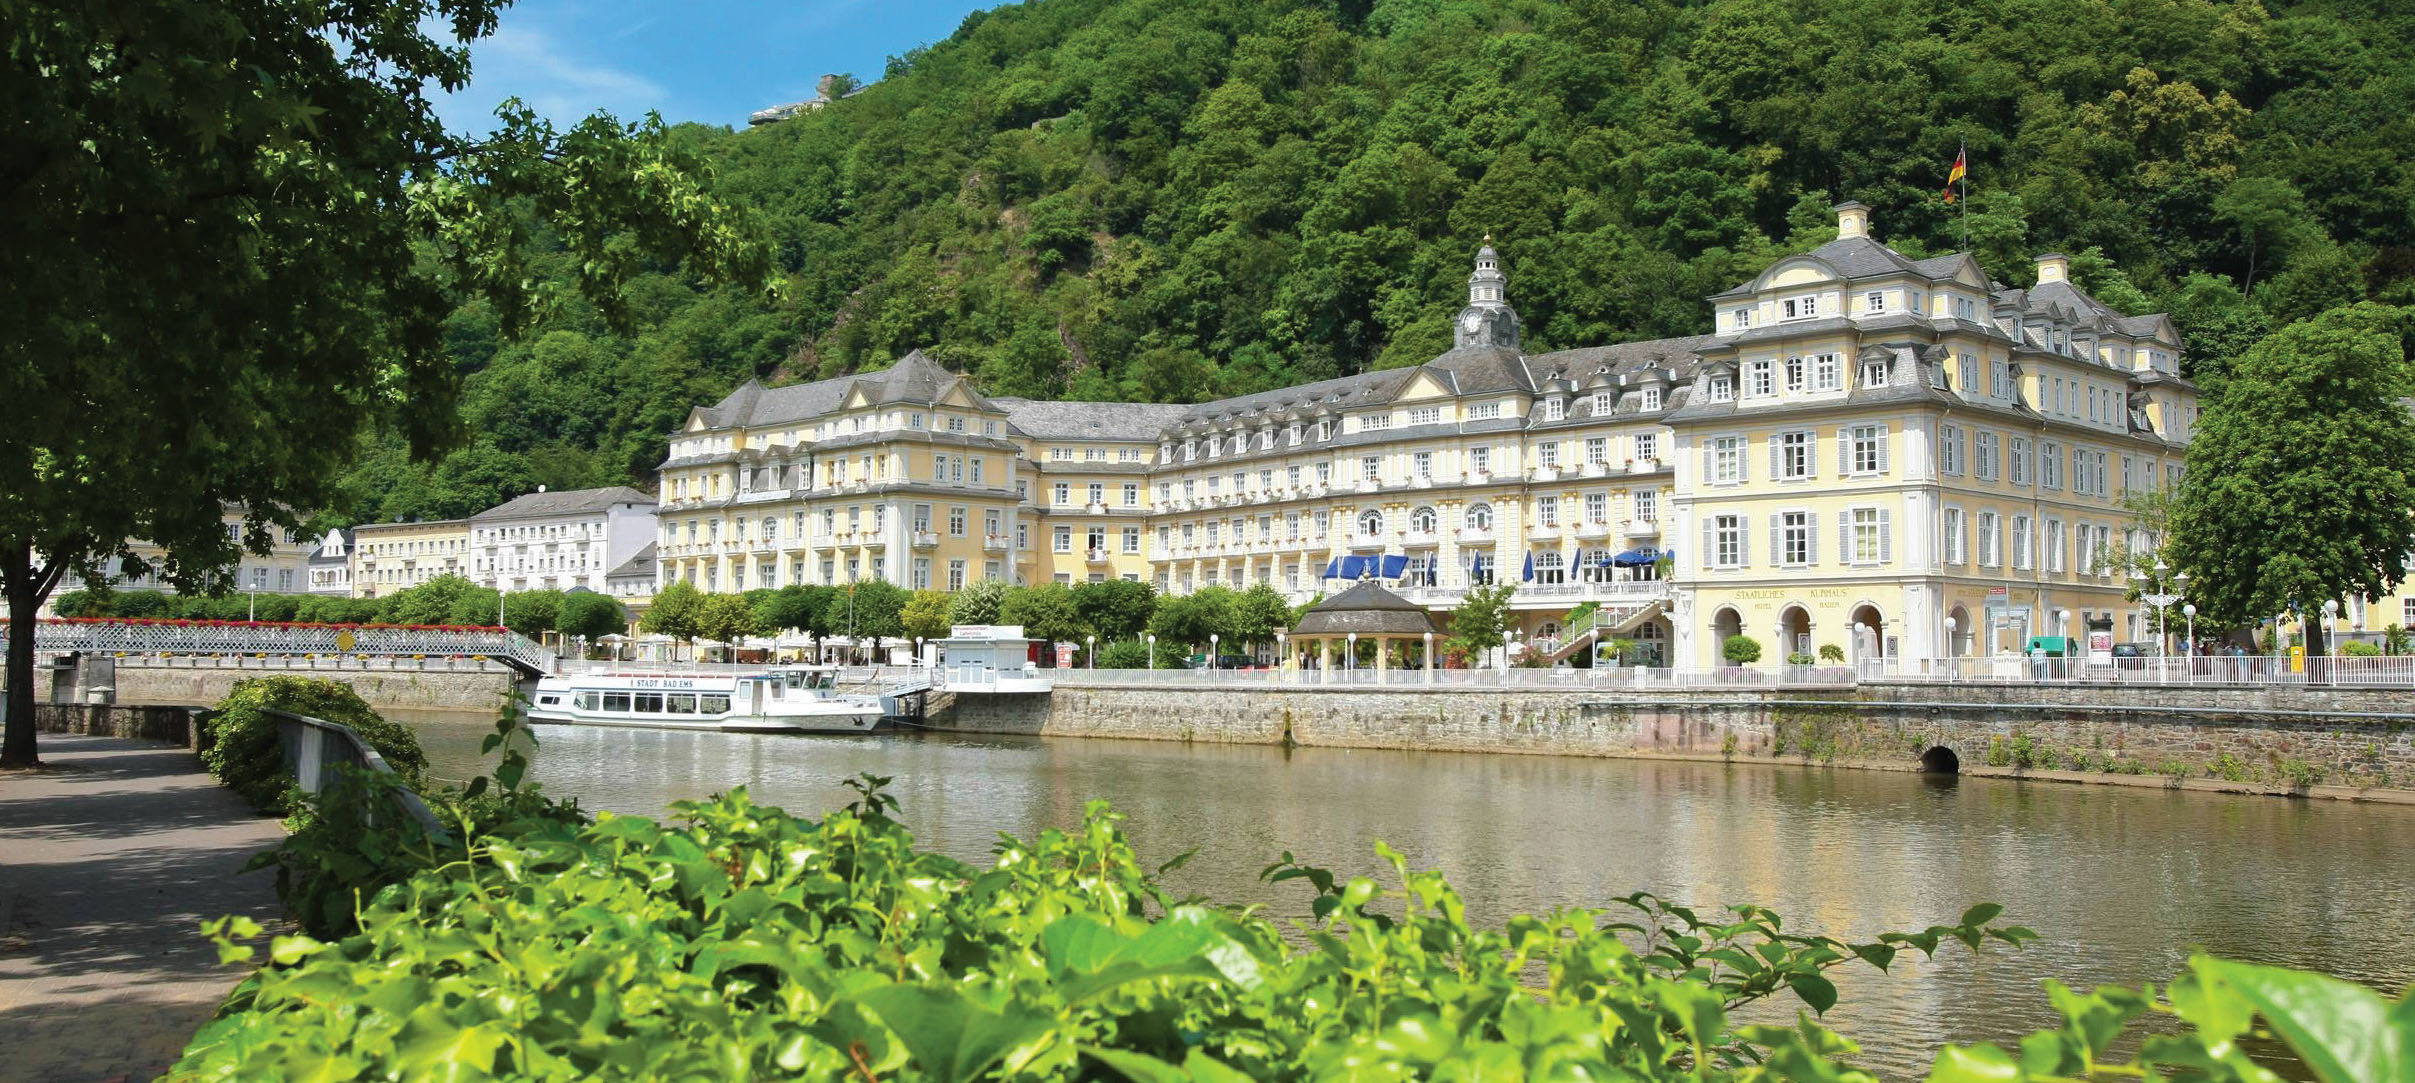 Kurstadt Bad Ems